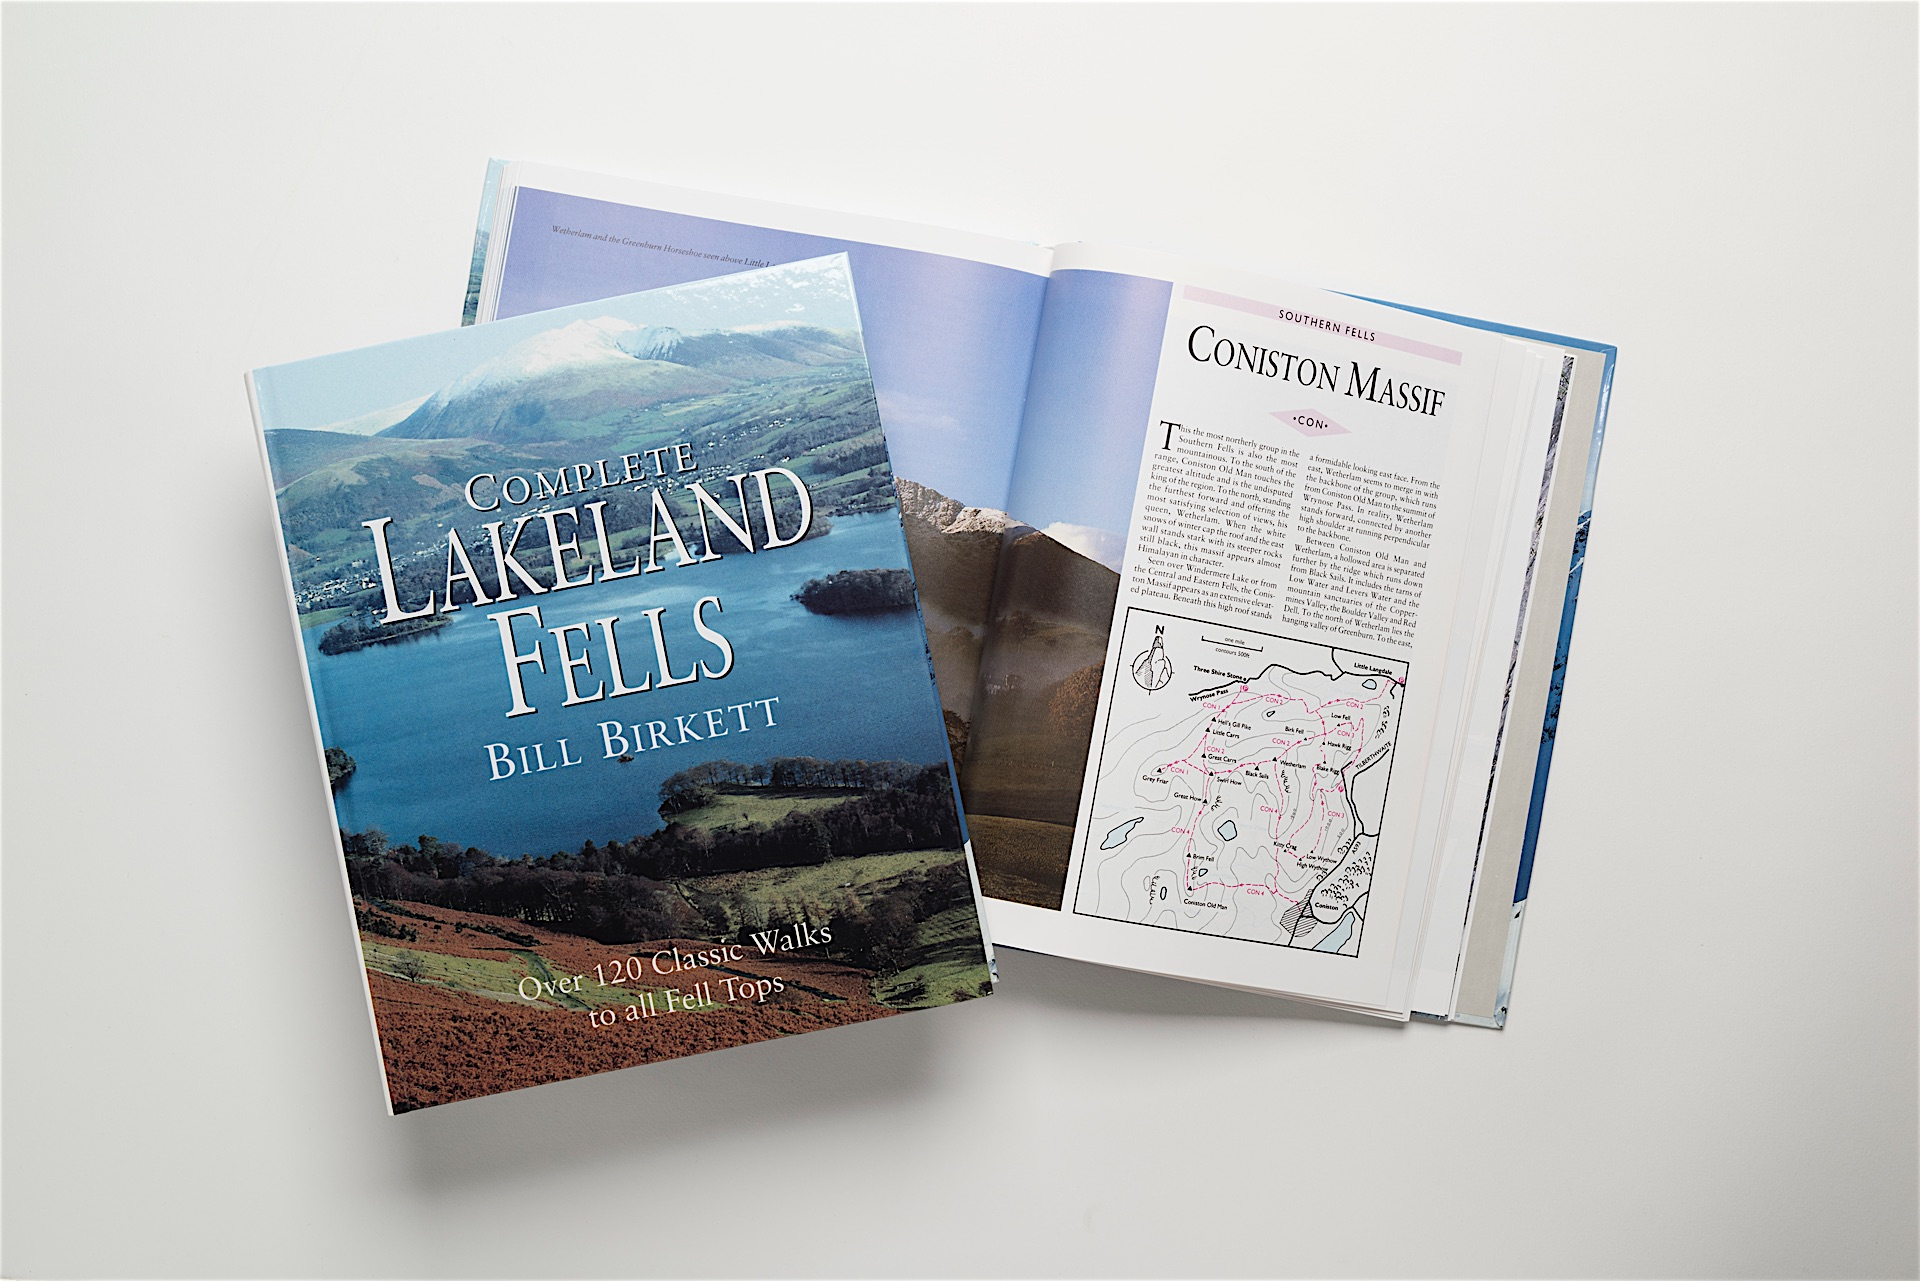 Comprehensive and detailed route reference work on the Lakeland Fells, this book covers all the Fell tops over 1,000 feet (305m) in the English Lake District National Park.Scafell- Bill Birketts Lakeland Walks